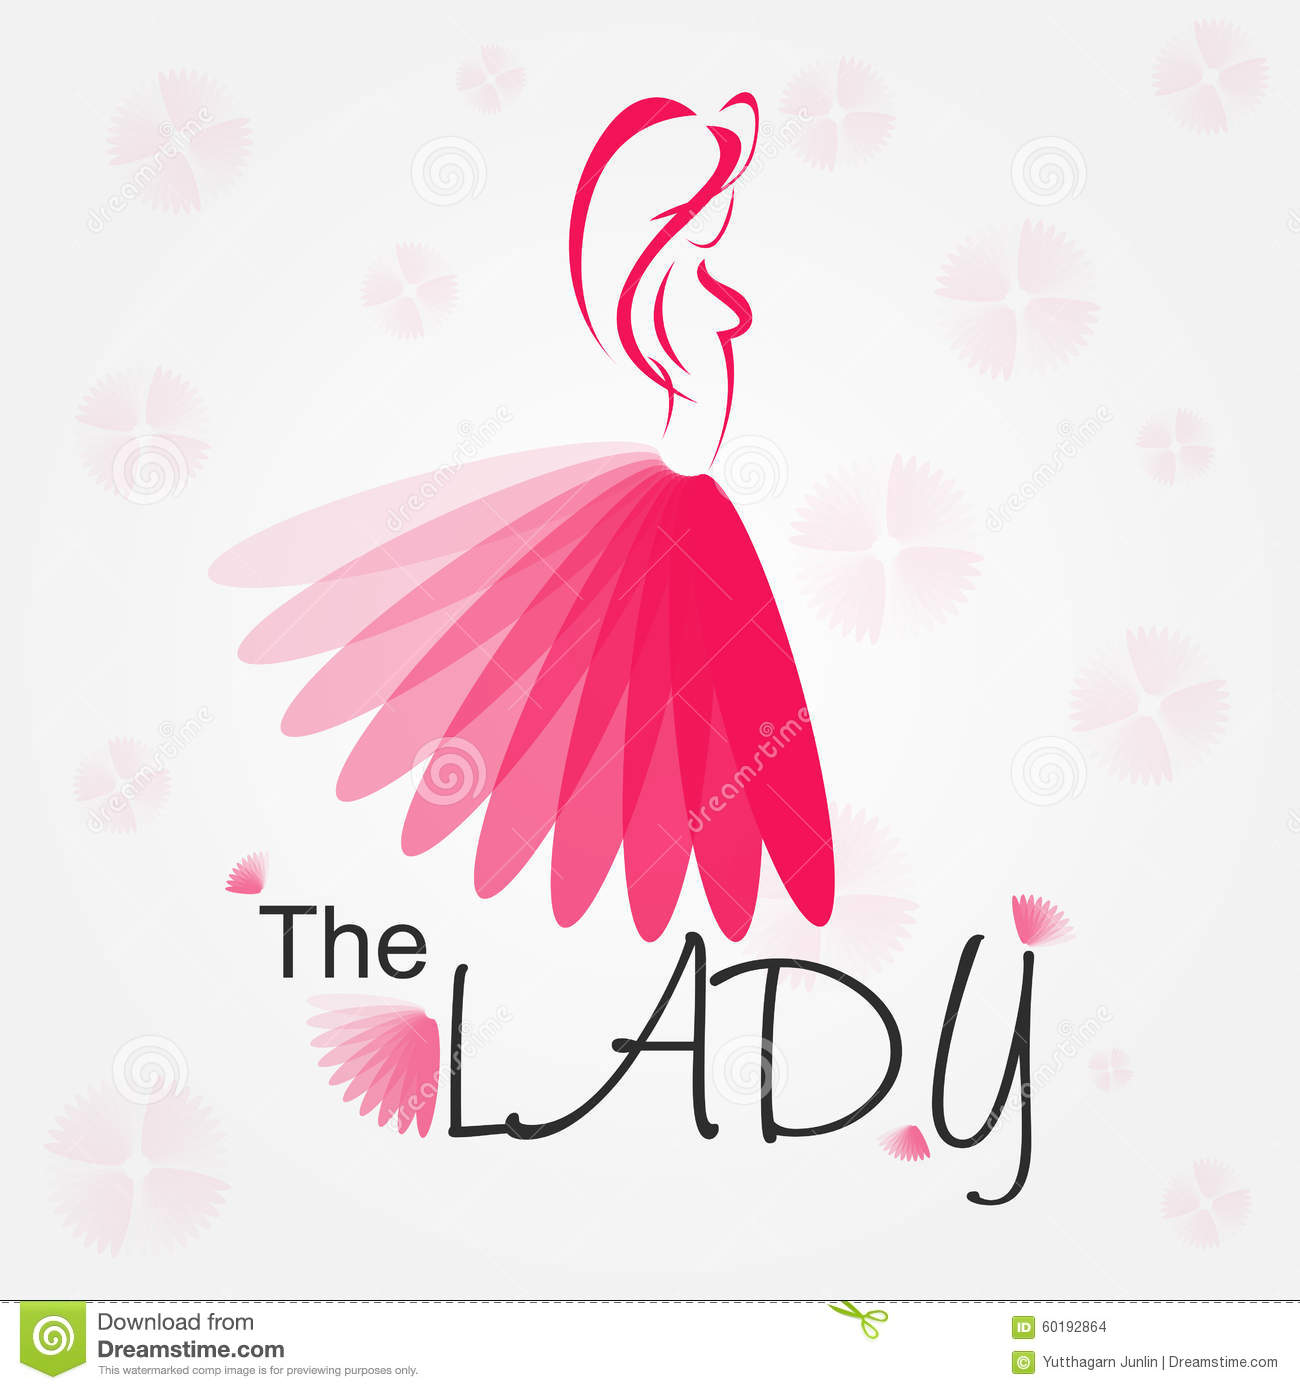 Lady Logo for business about fashion or organization - vector.